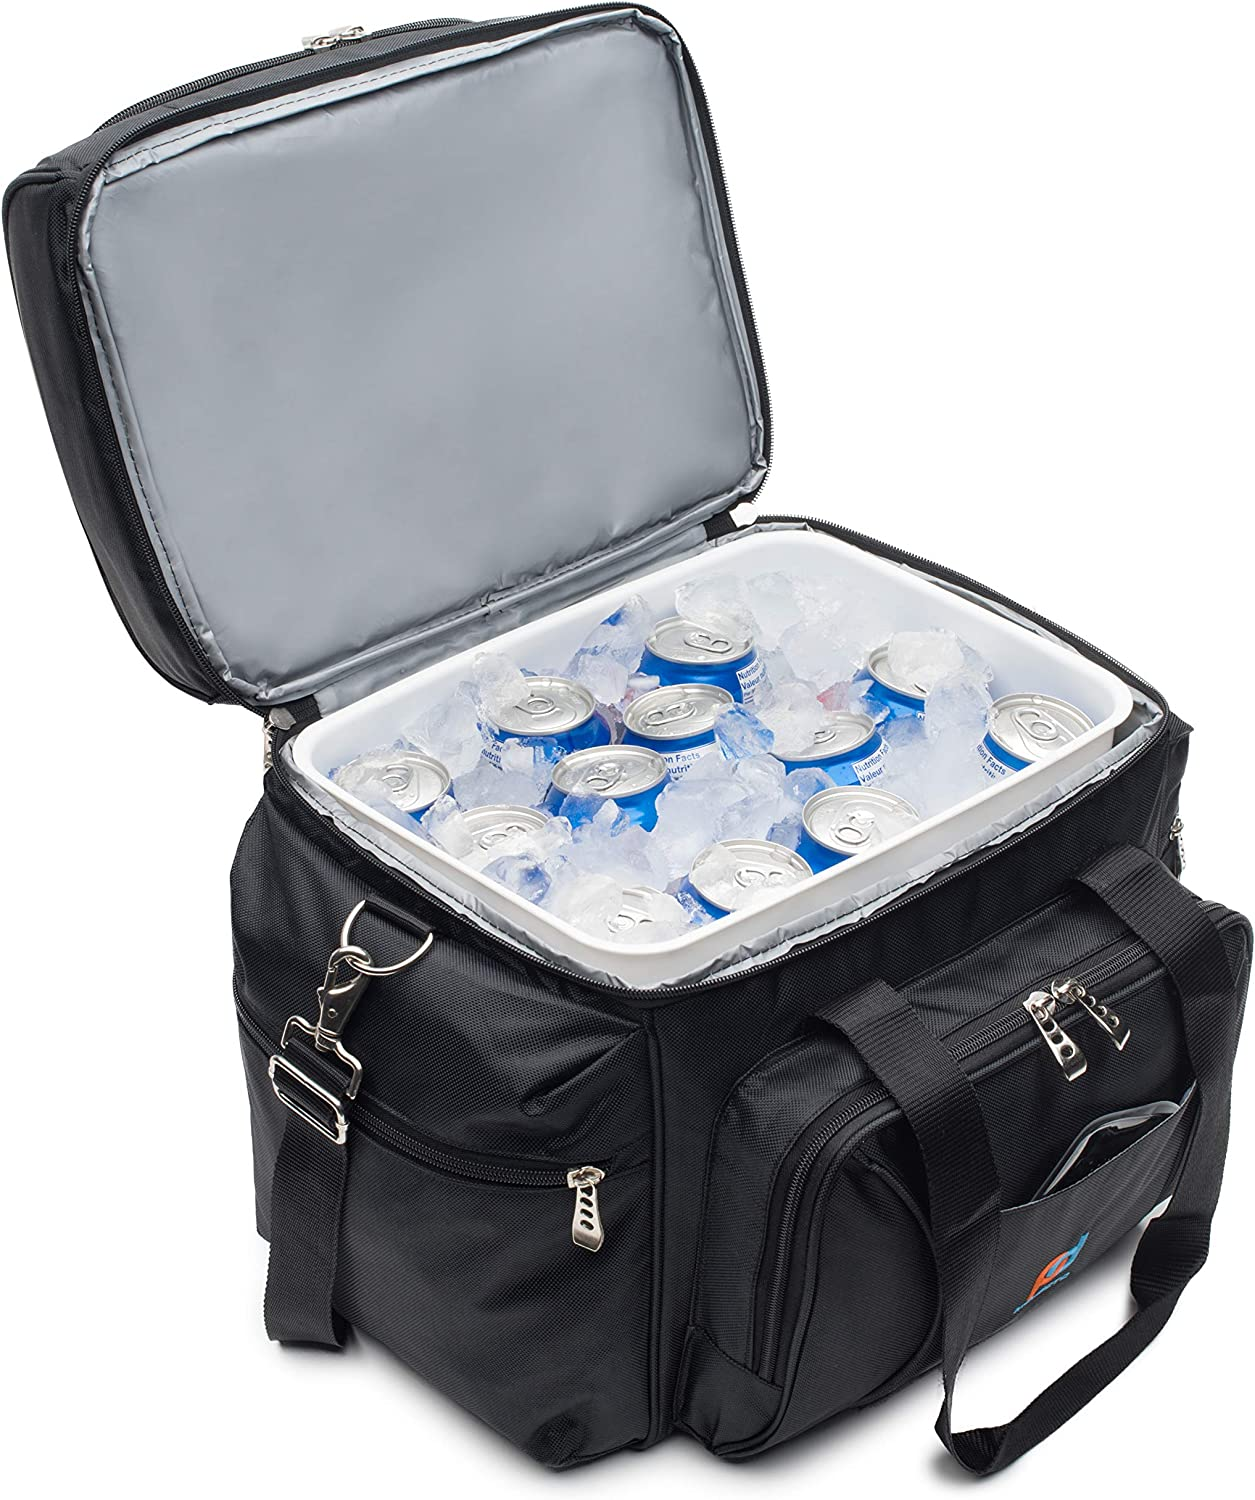 MOJECTO Large Cooler Bag with Leakproof Hard Liner Bucket. Two Insulated Compartments, Heavy Duty 1680D Fabric, Thick Foam Insulation, Reinforced Stiches, Durable Zipper, Metal Clips, Hardliner